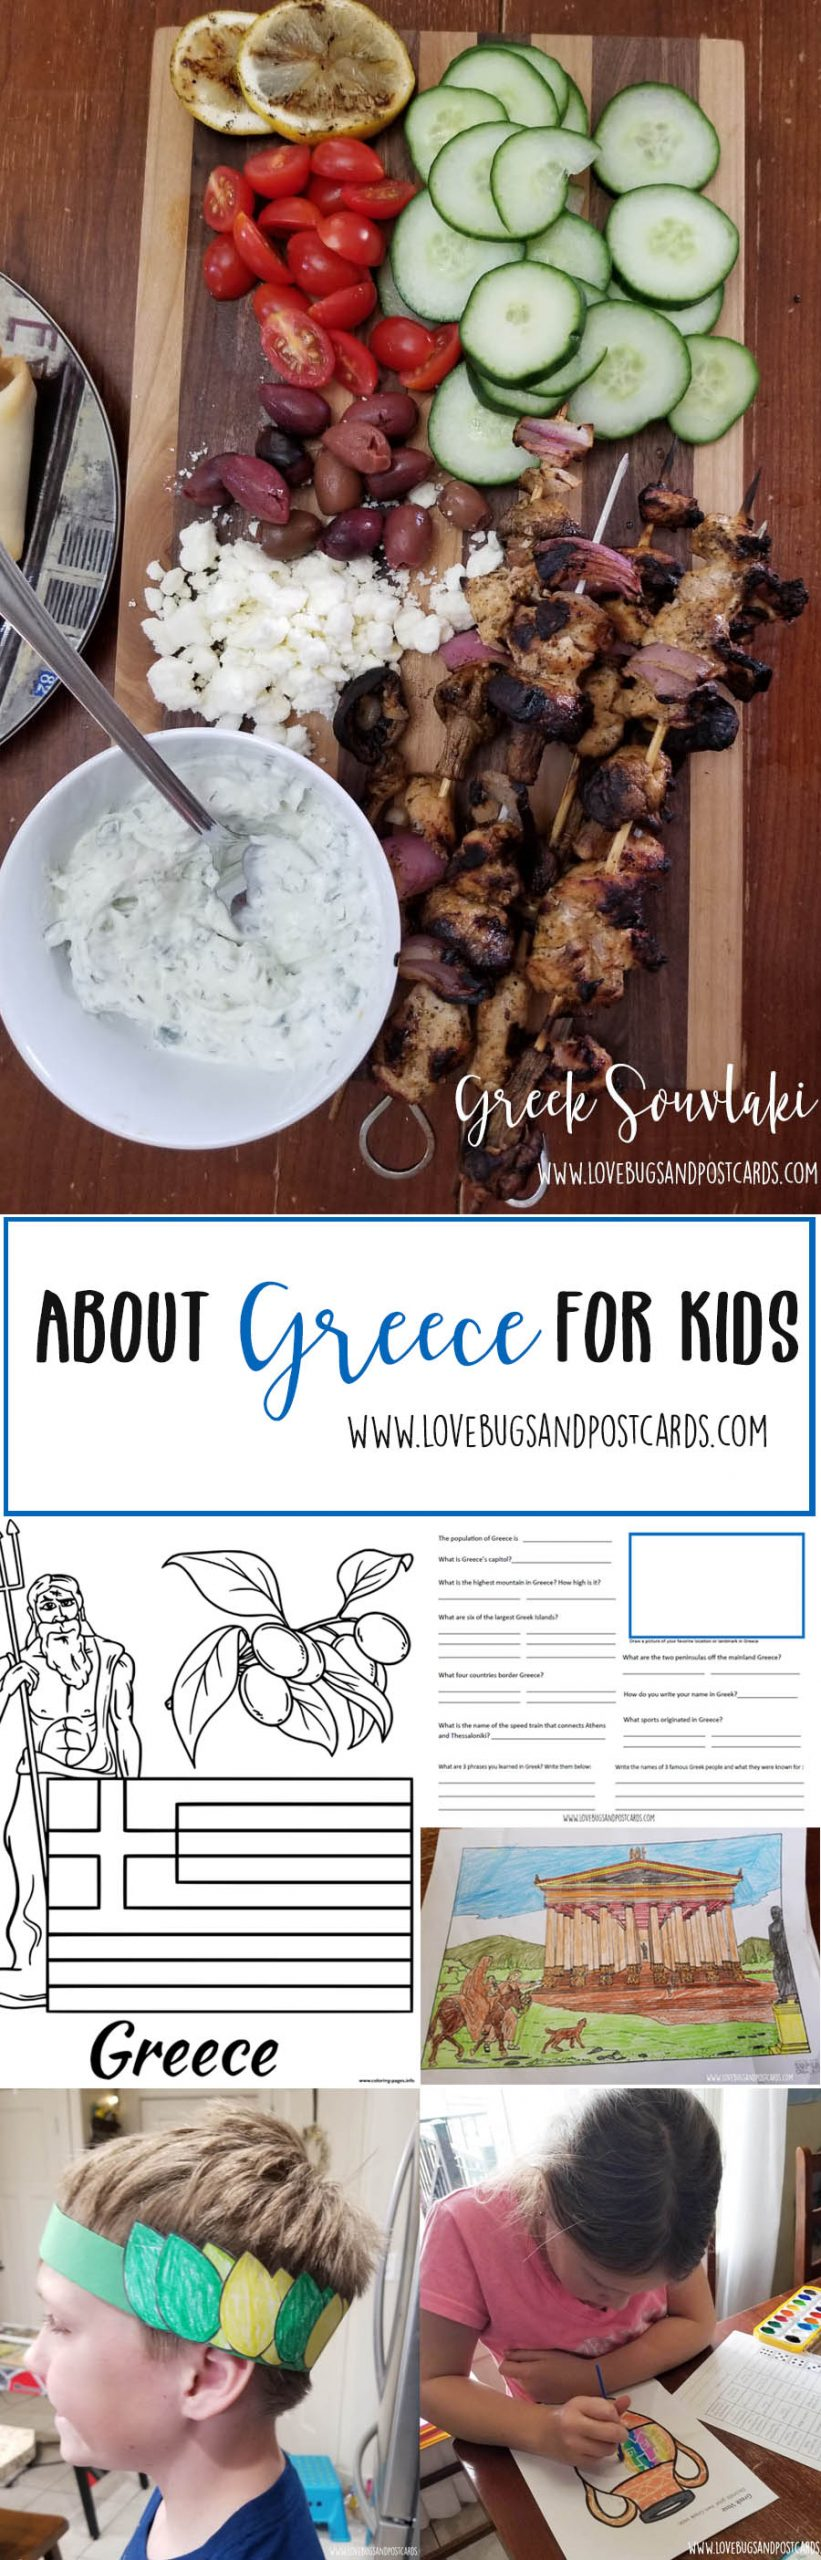 About Greece for Kids (great for homeschooling)